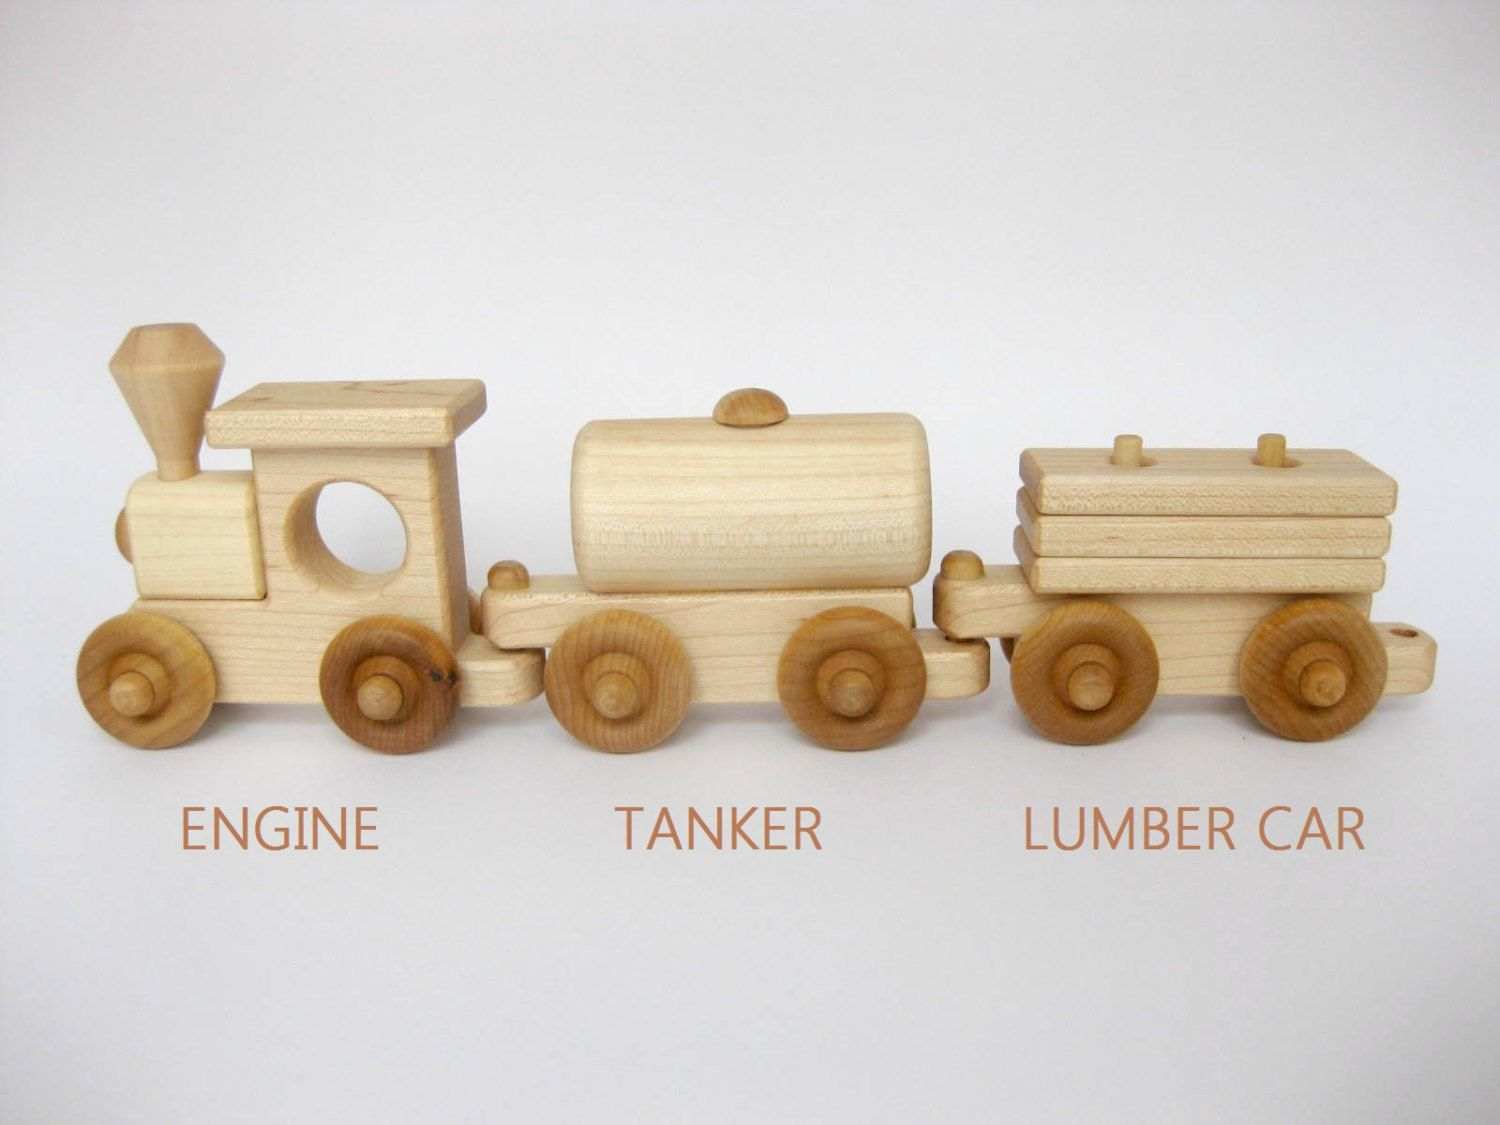 Wooden Toy Train Set 3 Cars Natural Wood Toy Wooden Toy